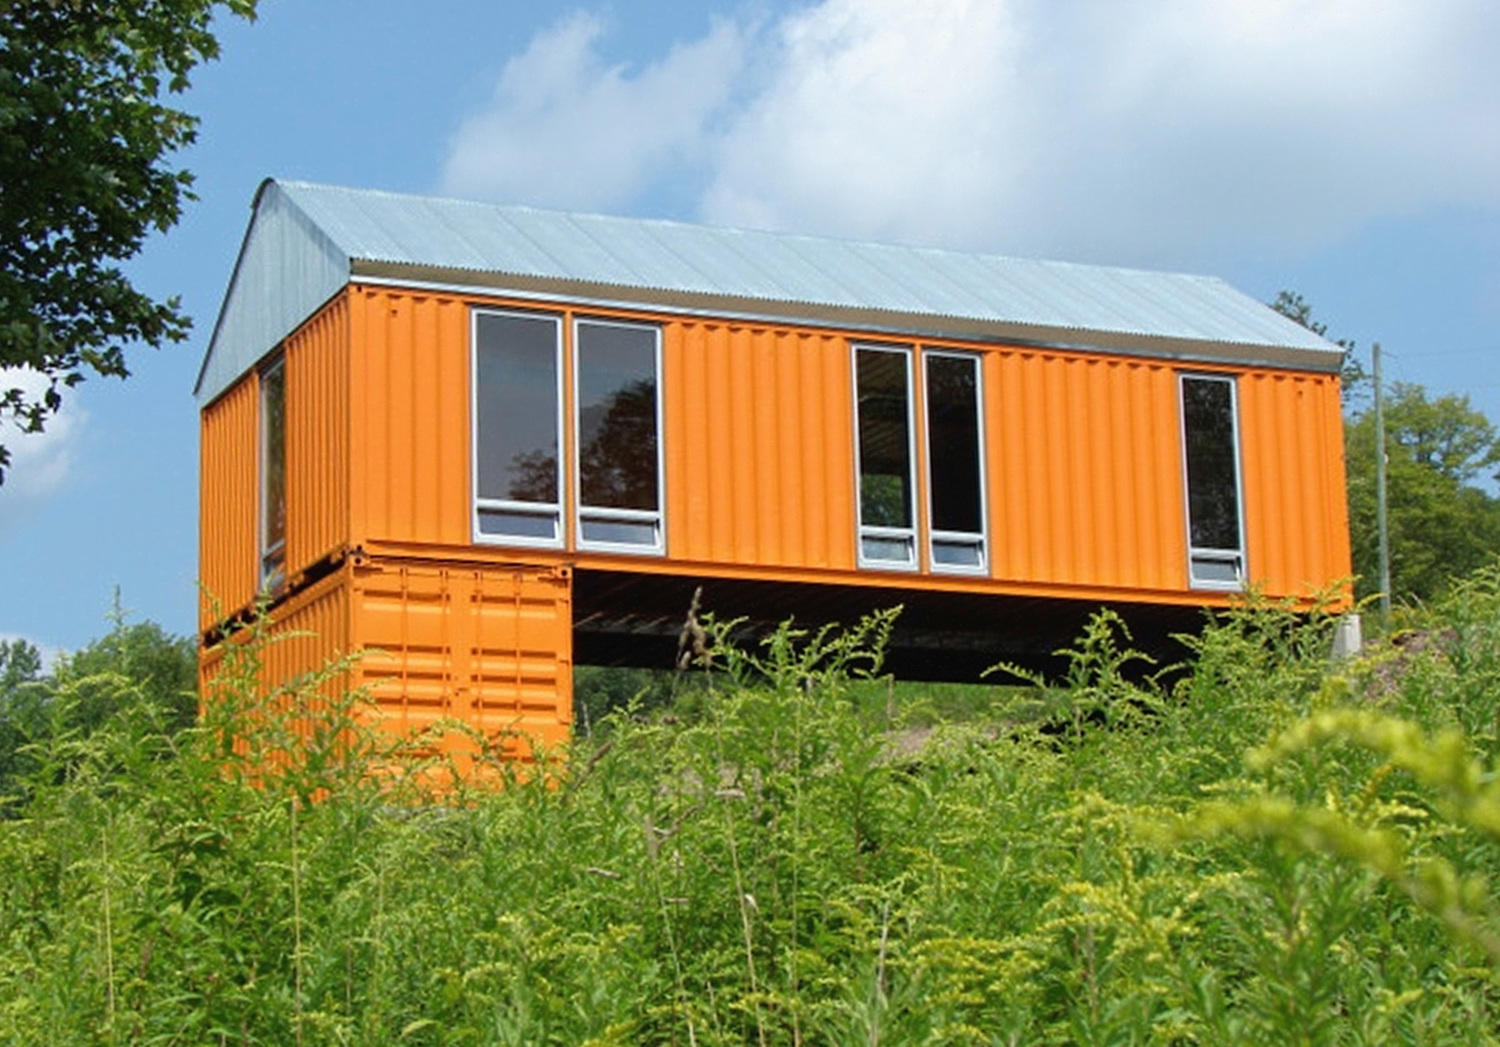 Best Kitchen Gallery: Catskills Shipping Container Homes Time Steele New York Times of Cottage Style Container Homes on rachelxblog.com